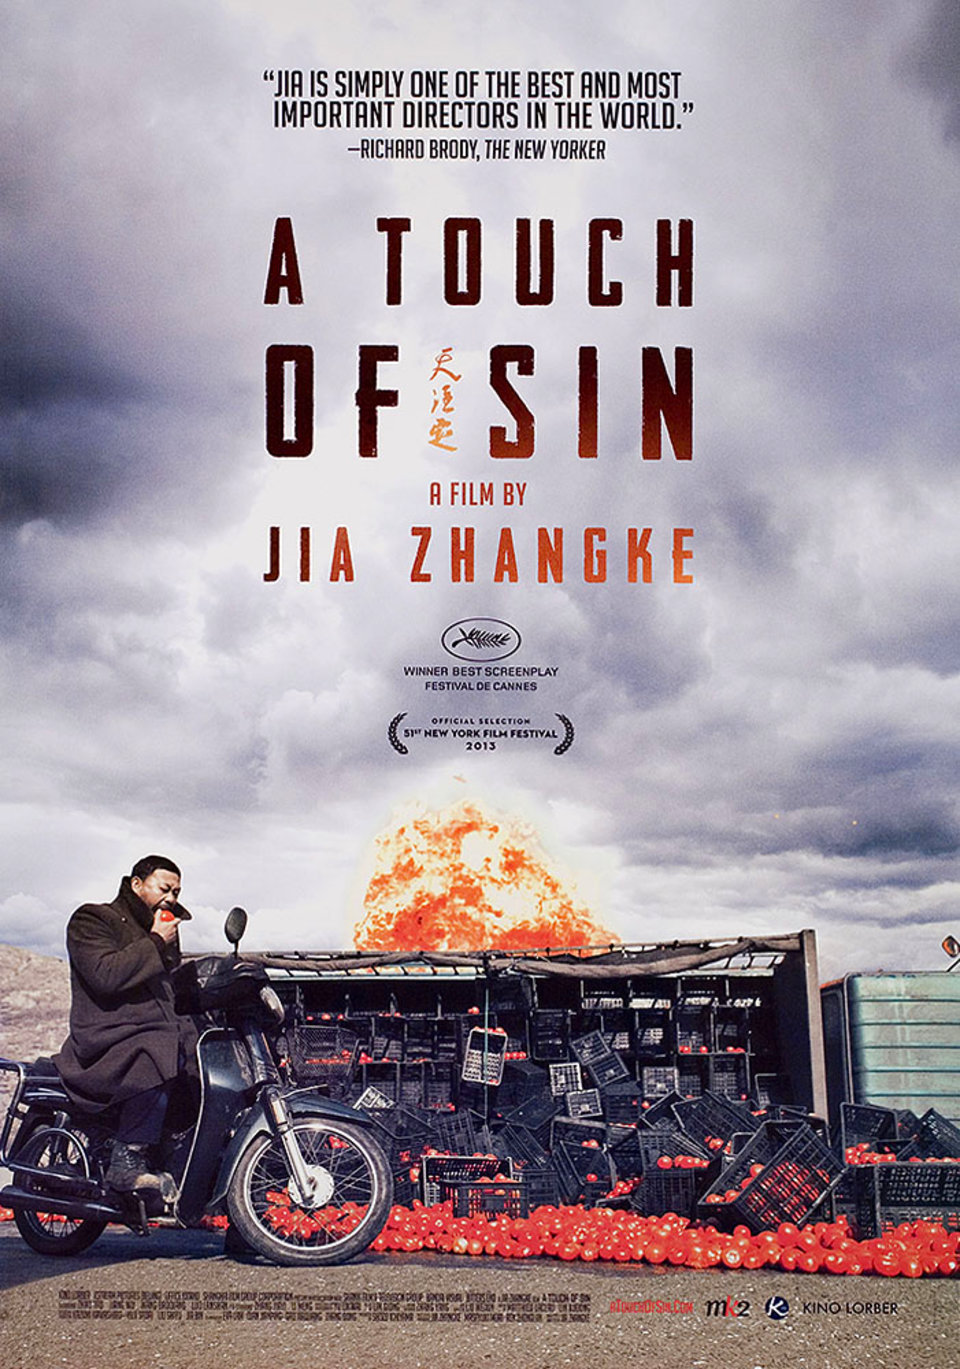 A Touch of Sin 2013 U.S. One Sheet Poster